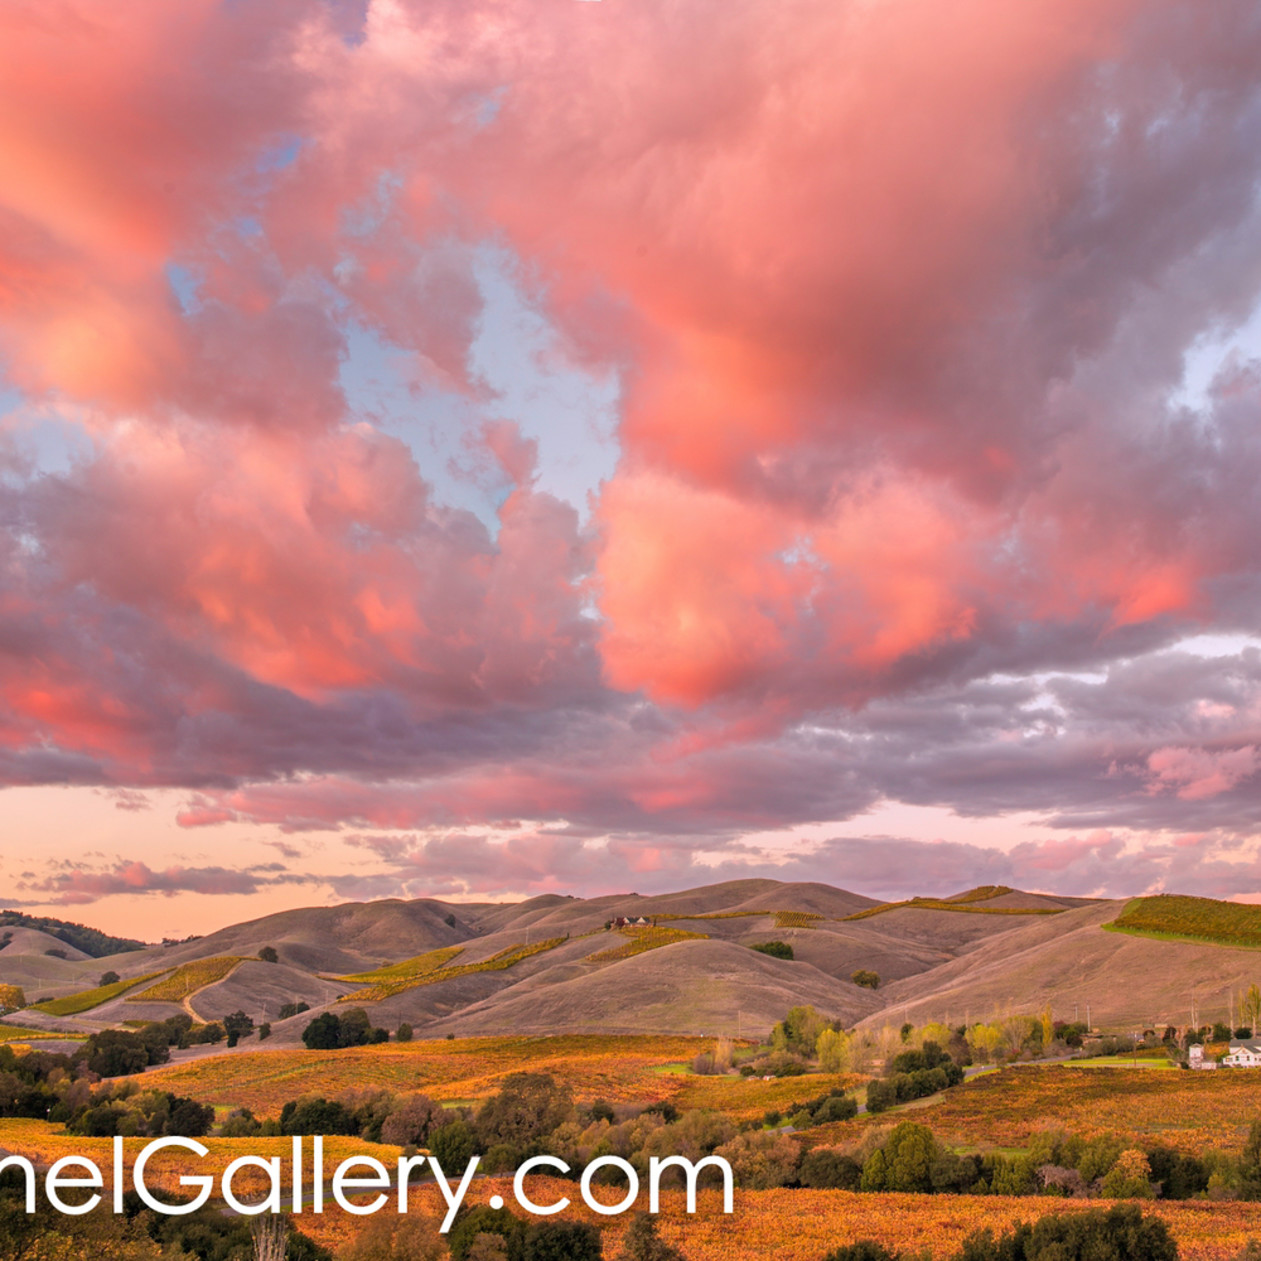 Wine country sunset lcbsvw